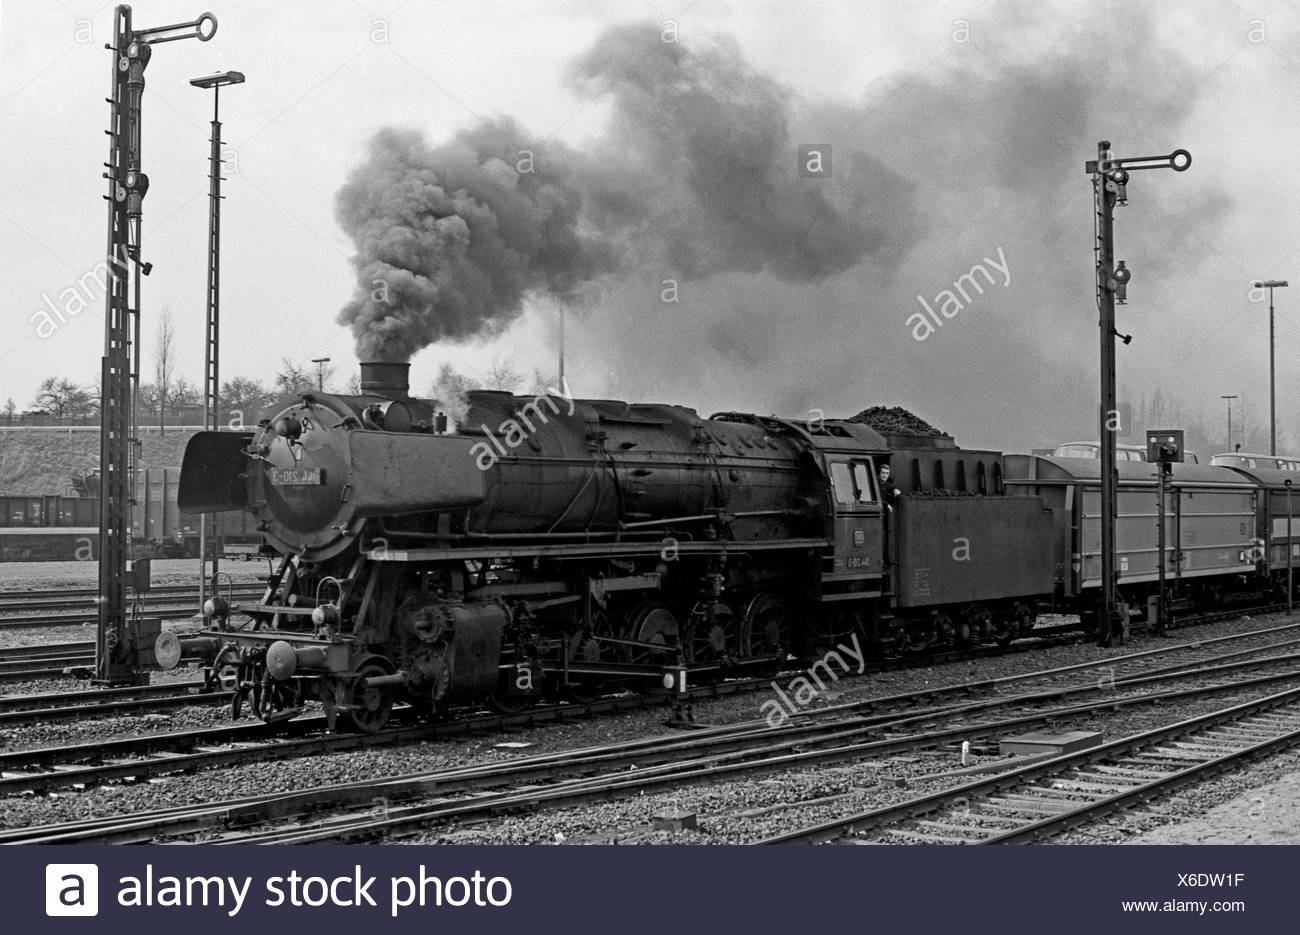 Helmstedt, Germany, the 044 210 with freight train at the heating session - Stock Image